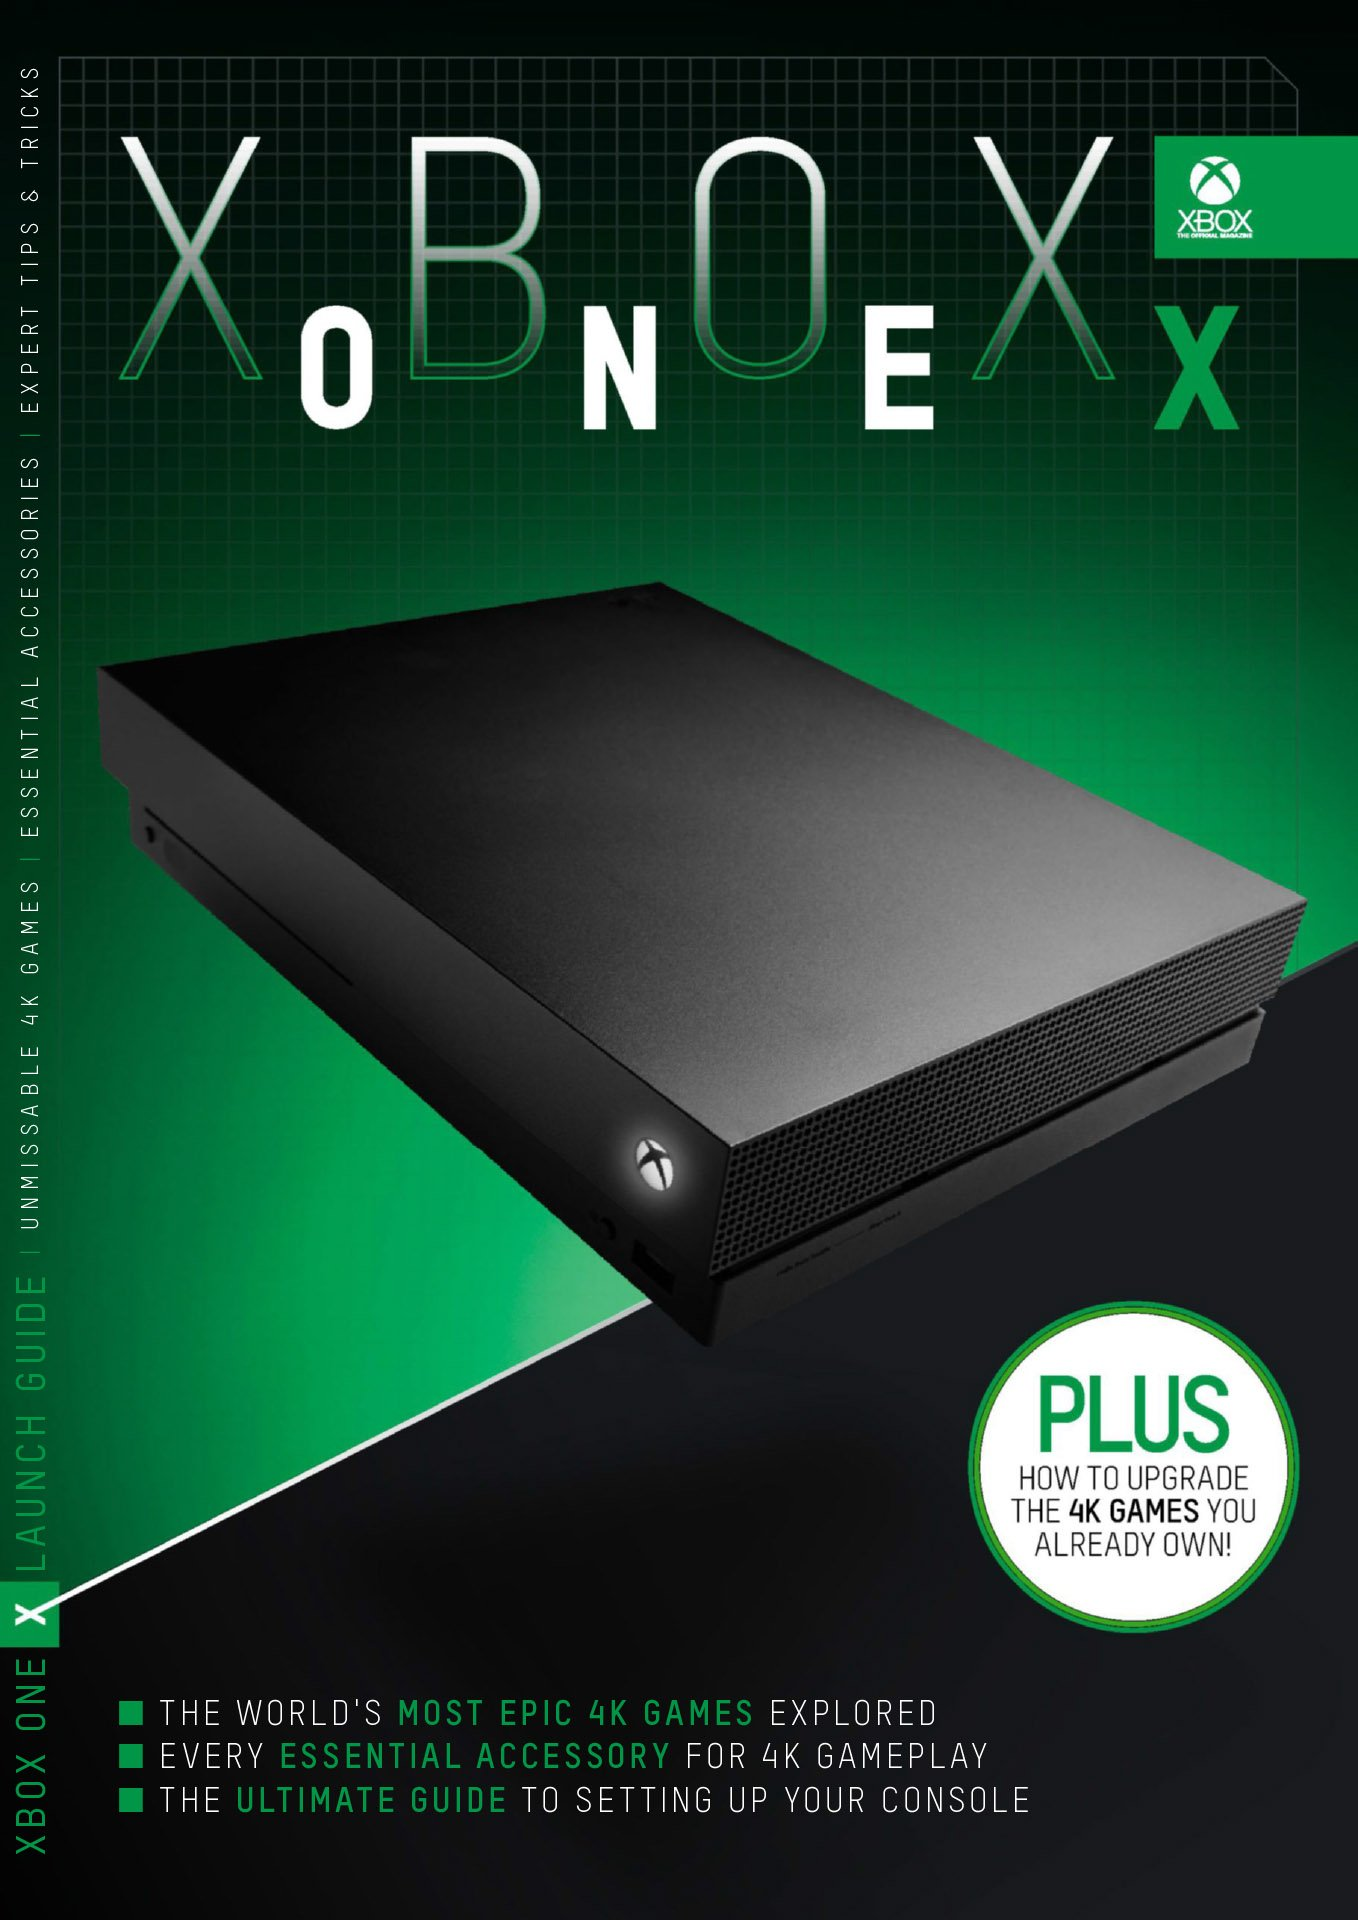 Xbox One X Launch Guide (December 2017)